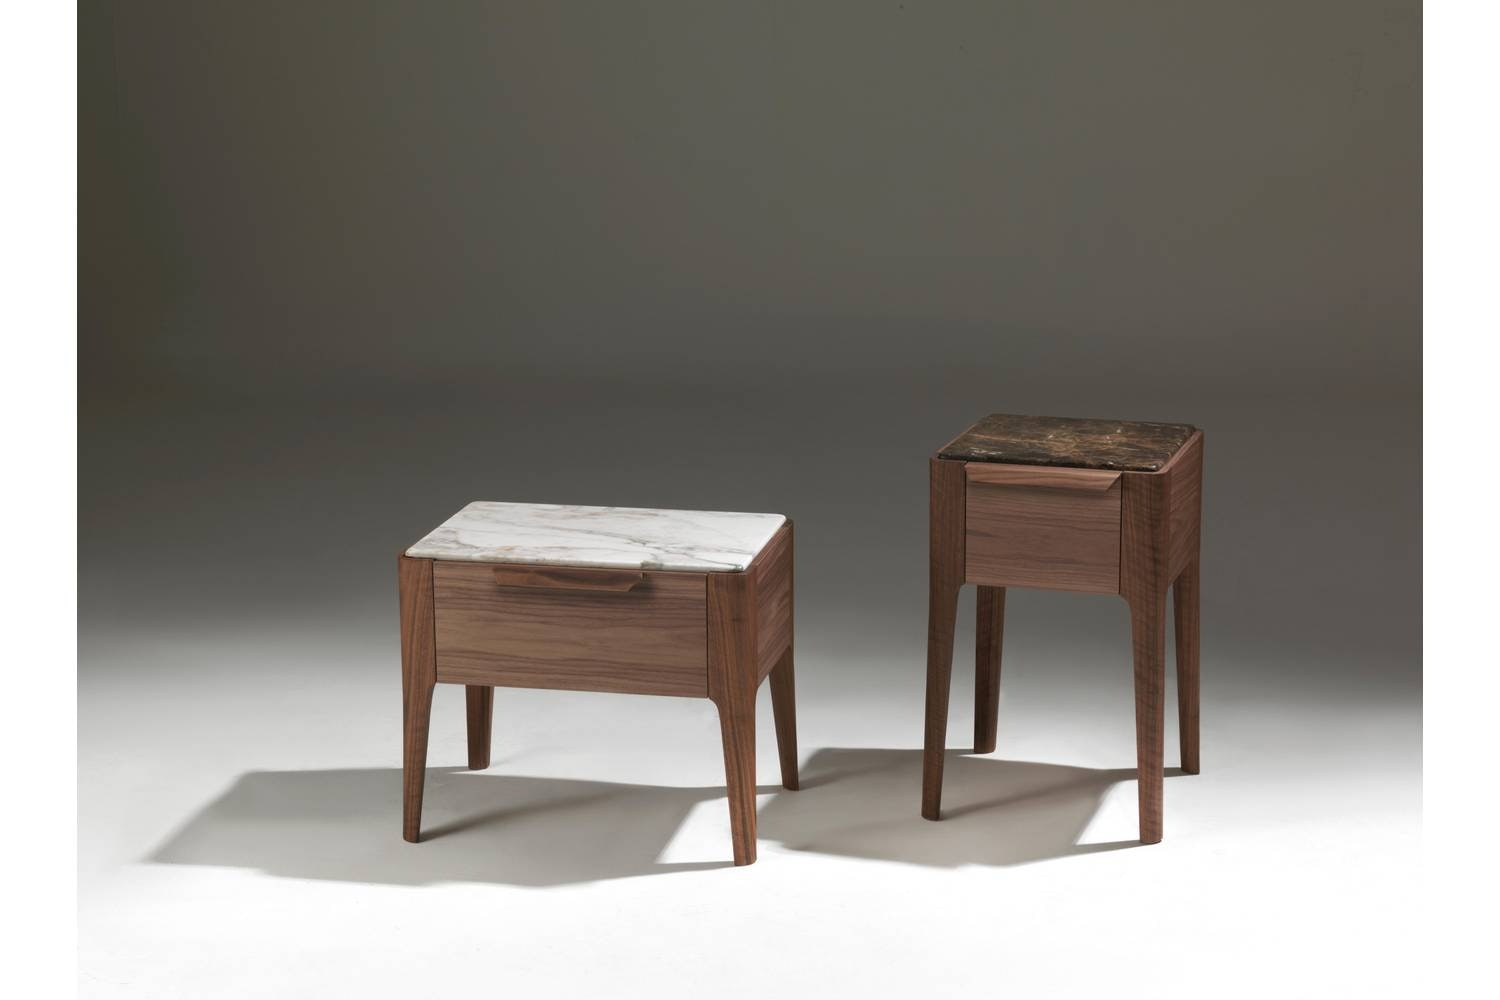 Ziggy Bedside Table by C. Ballabio for Porada